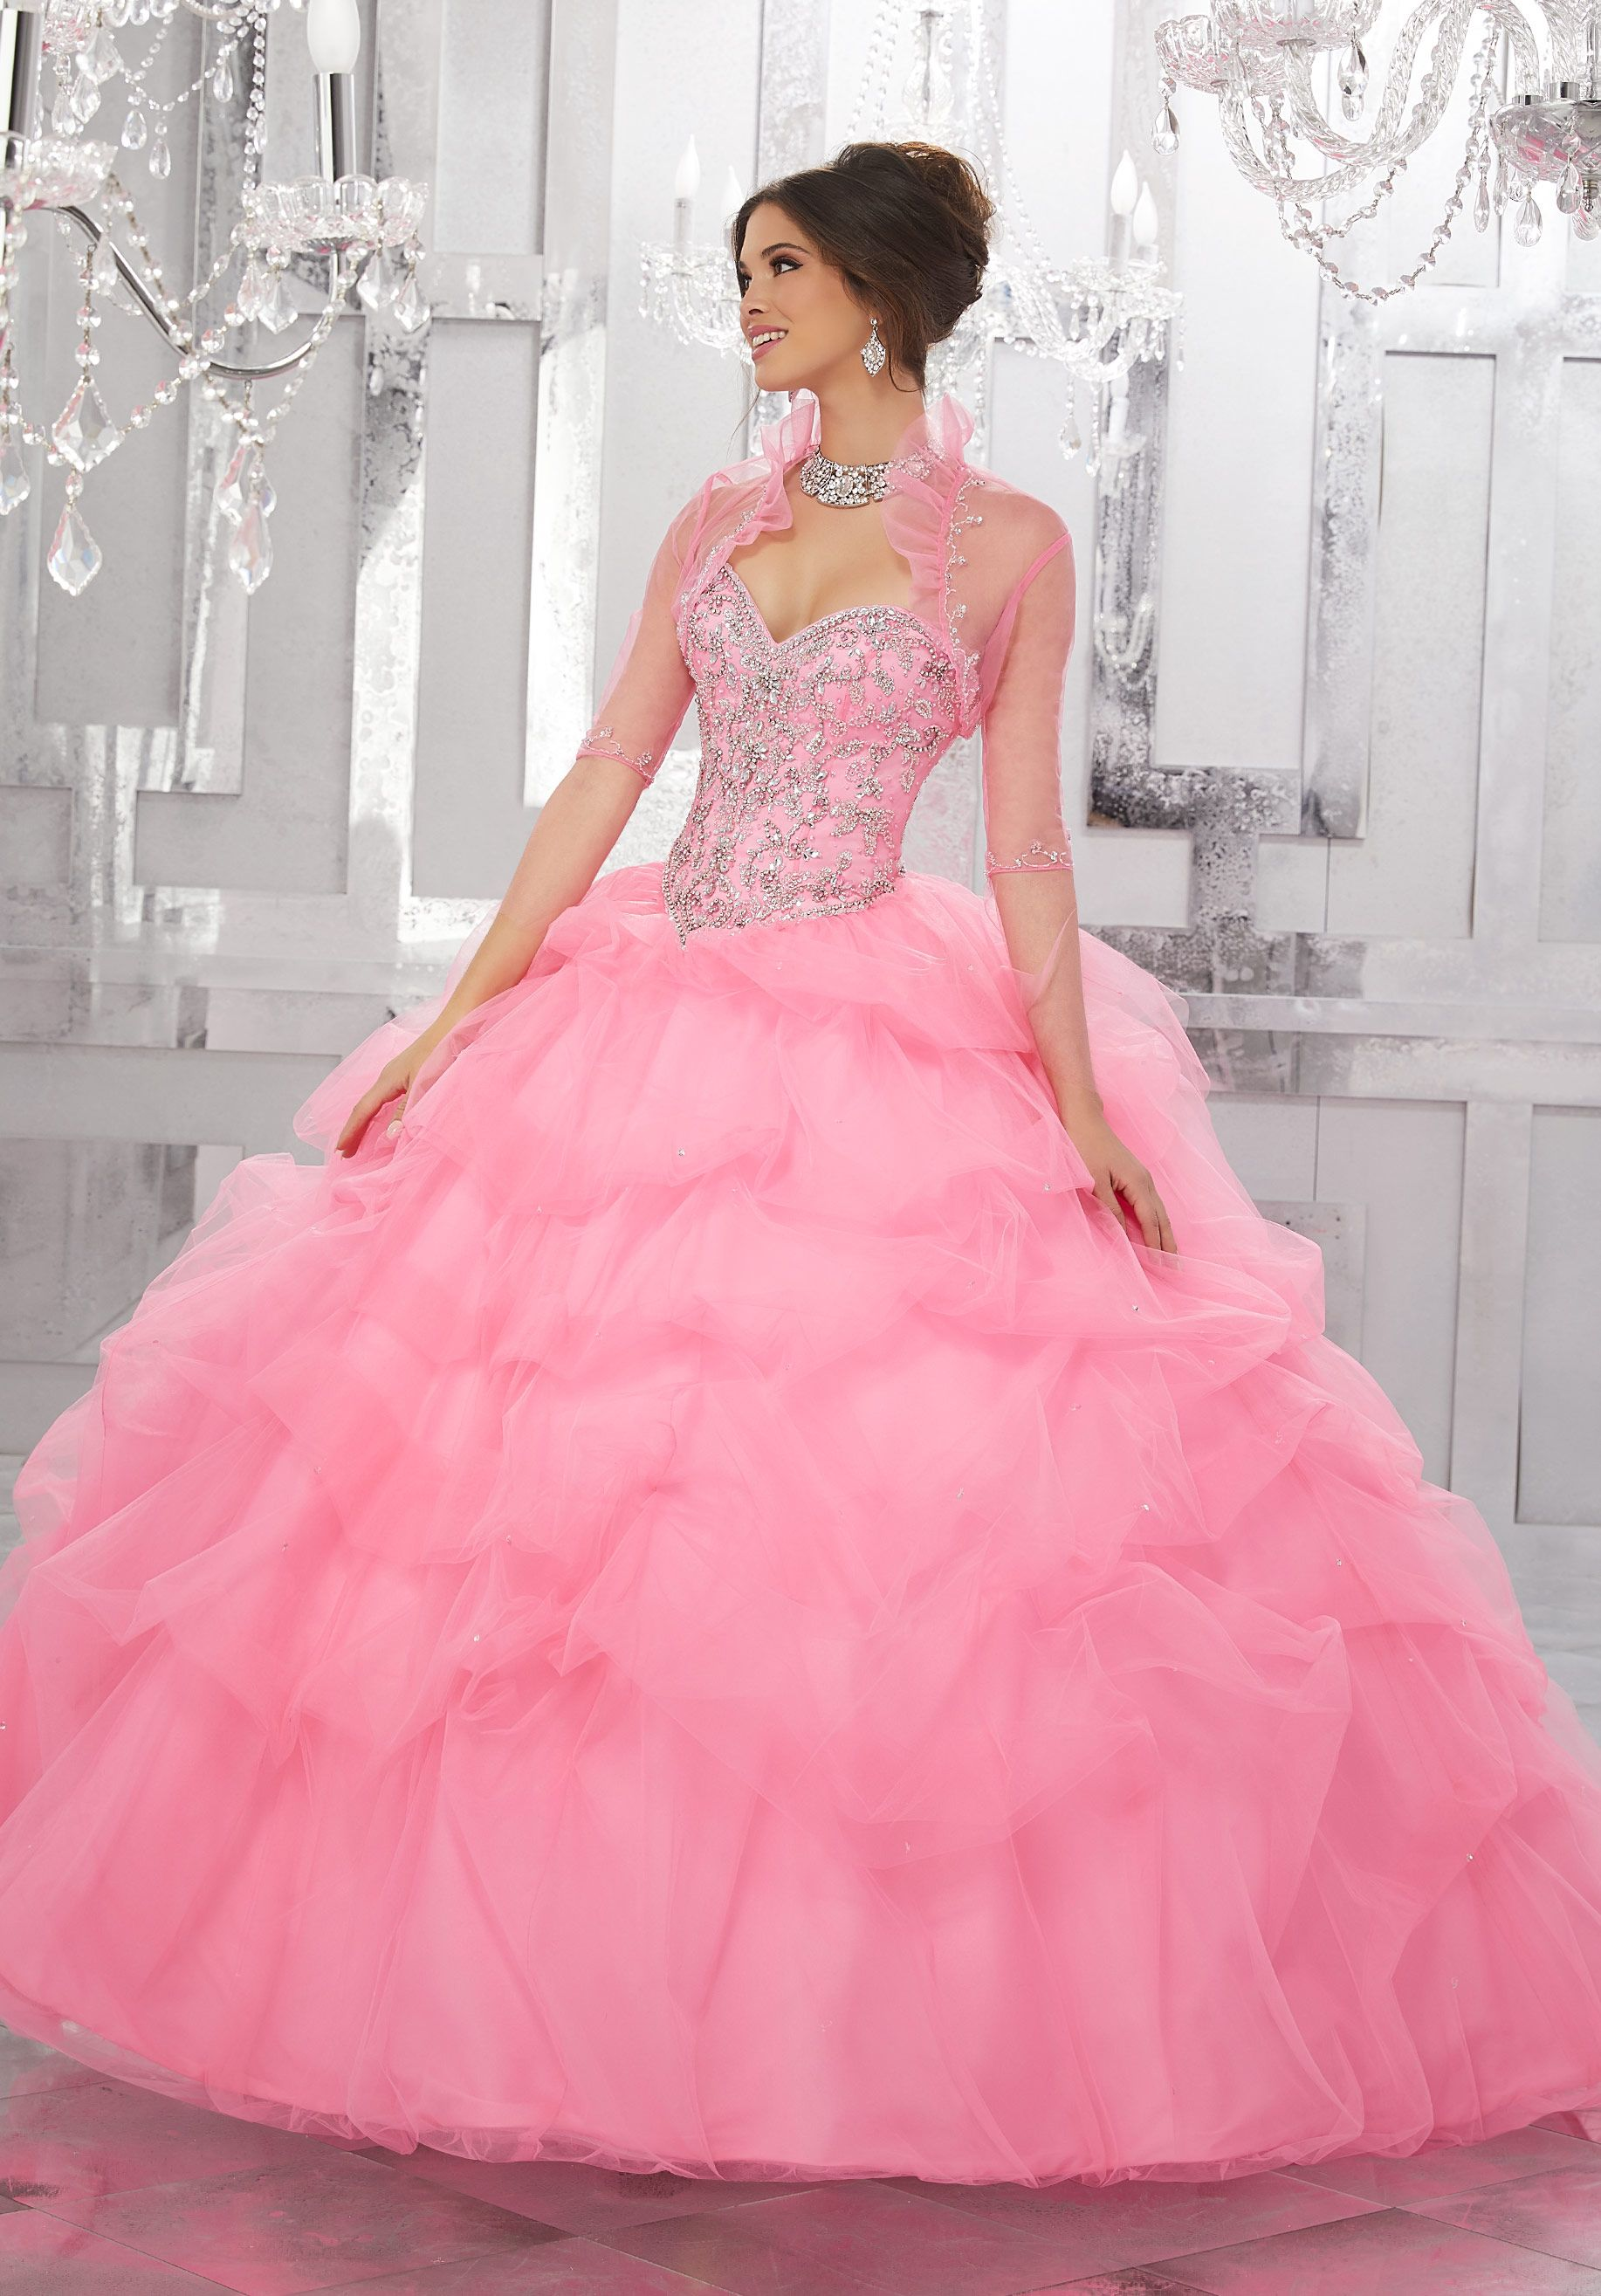 This Dreamy Tulle Quinceañera Ballgown Features a Gorgeous Gemstone ...